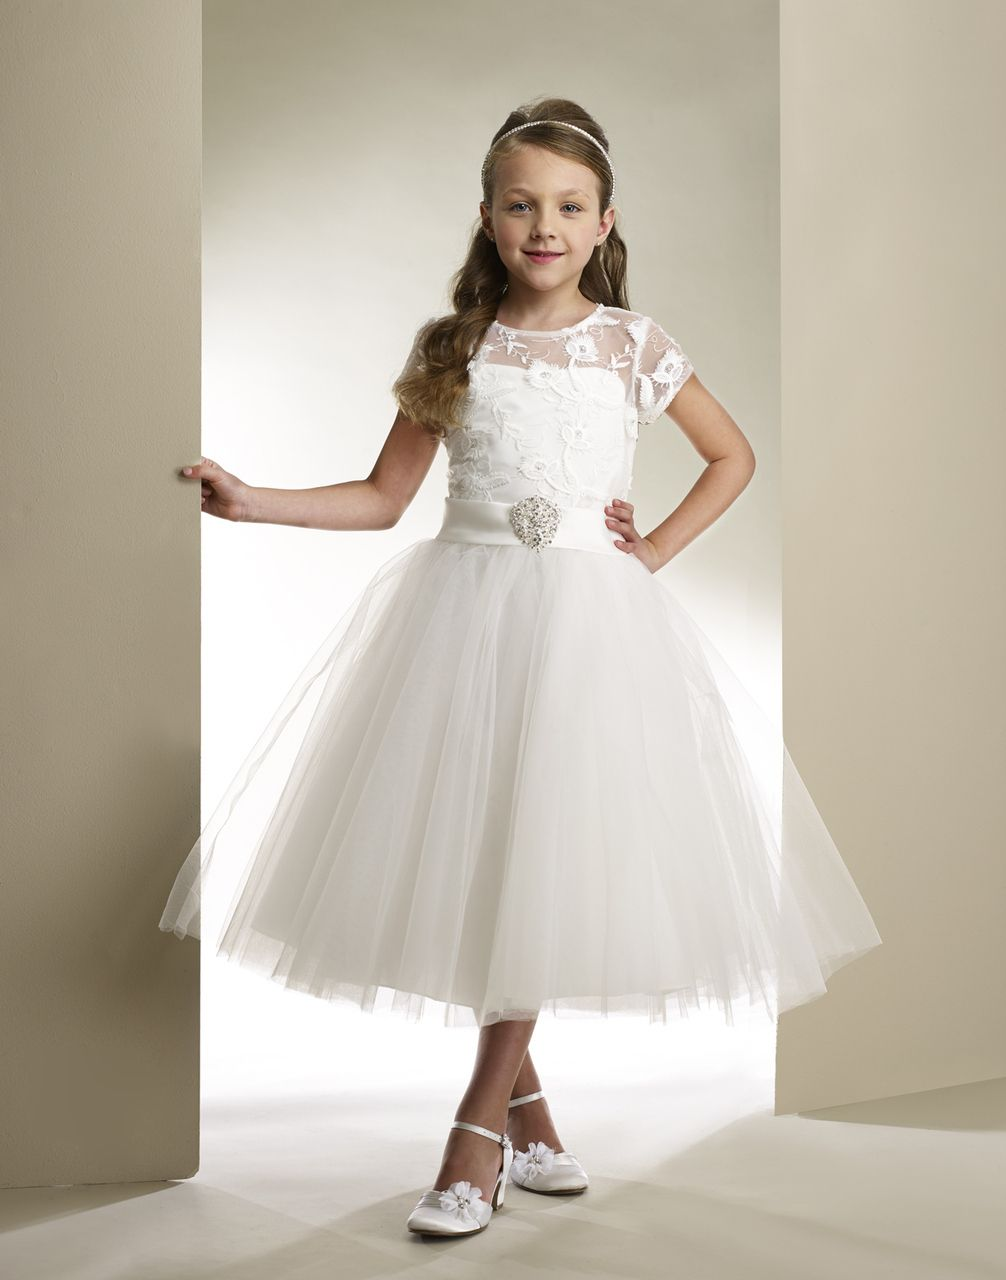 269034fe8 Macis Princess White Lace Tulle Communion Dress